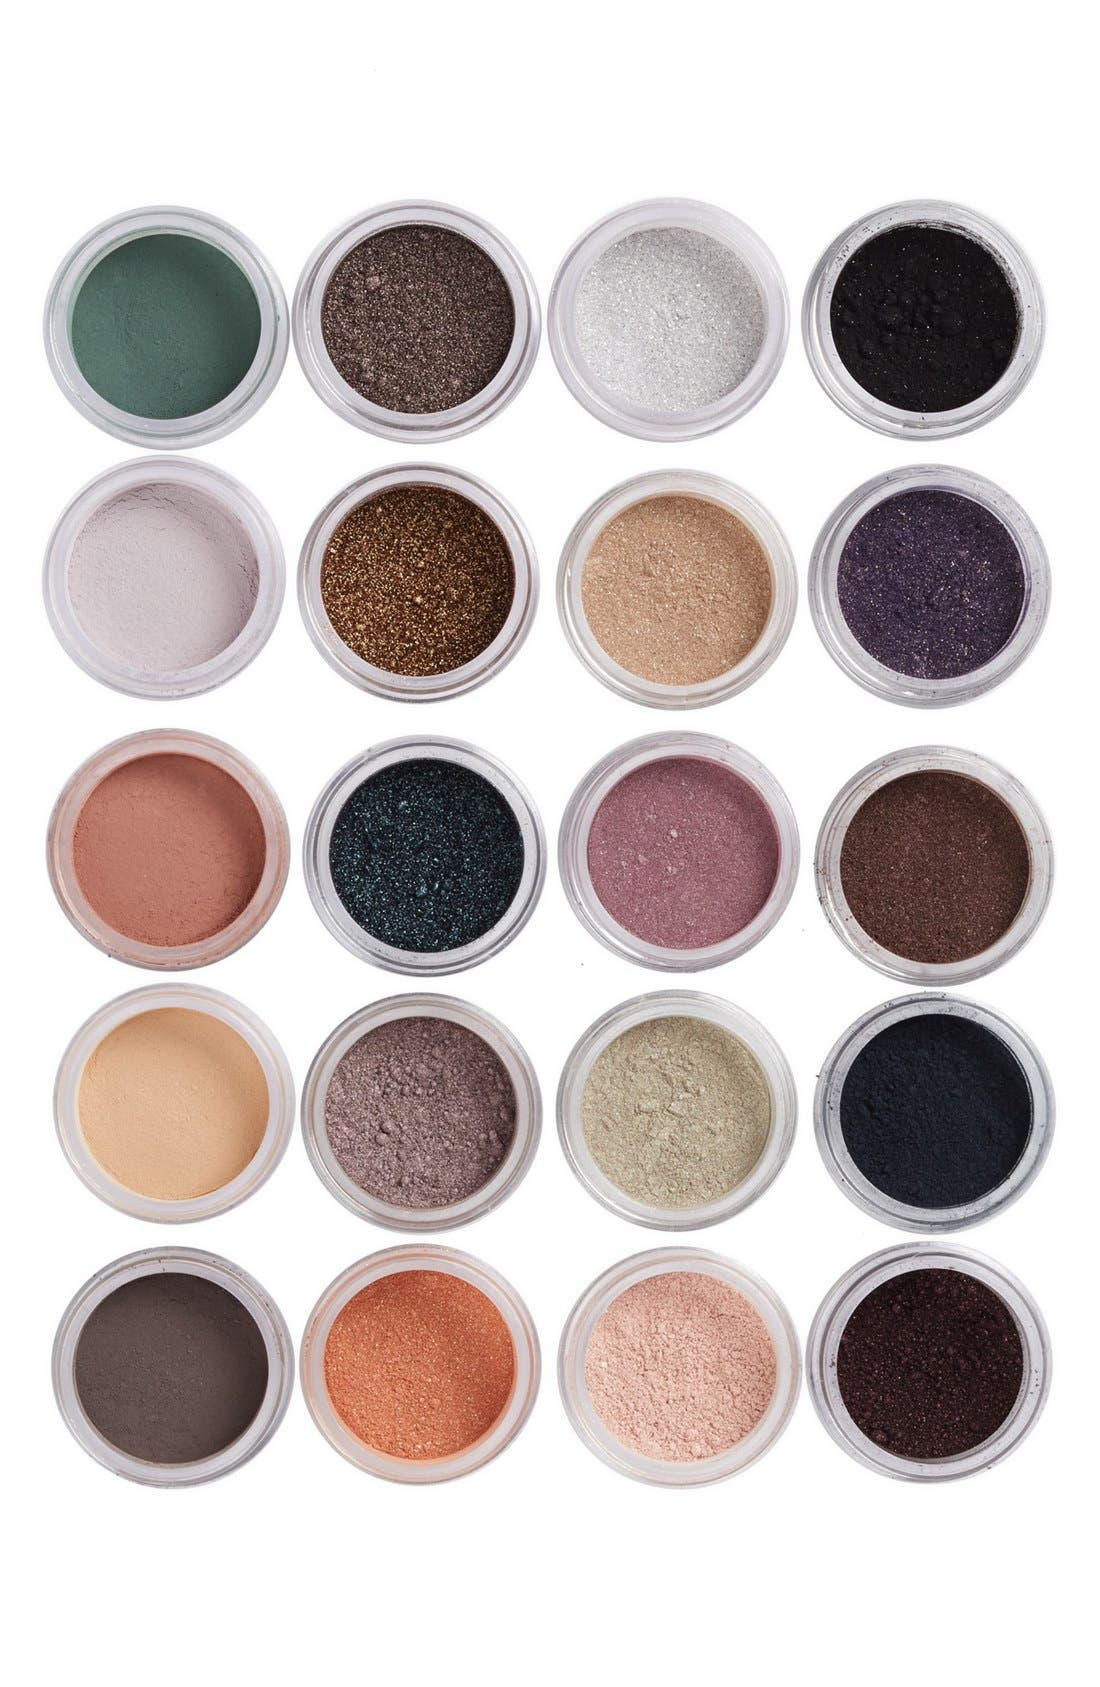 Alternate Image 1 Selected - bareMinerals® 'Degrees of Dazzling' Eyeshadow Palette ($220 Value)